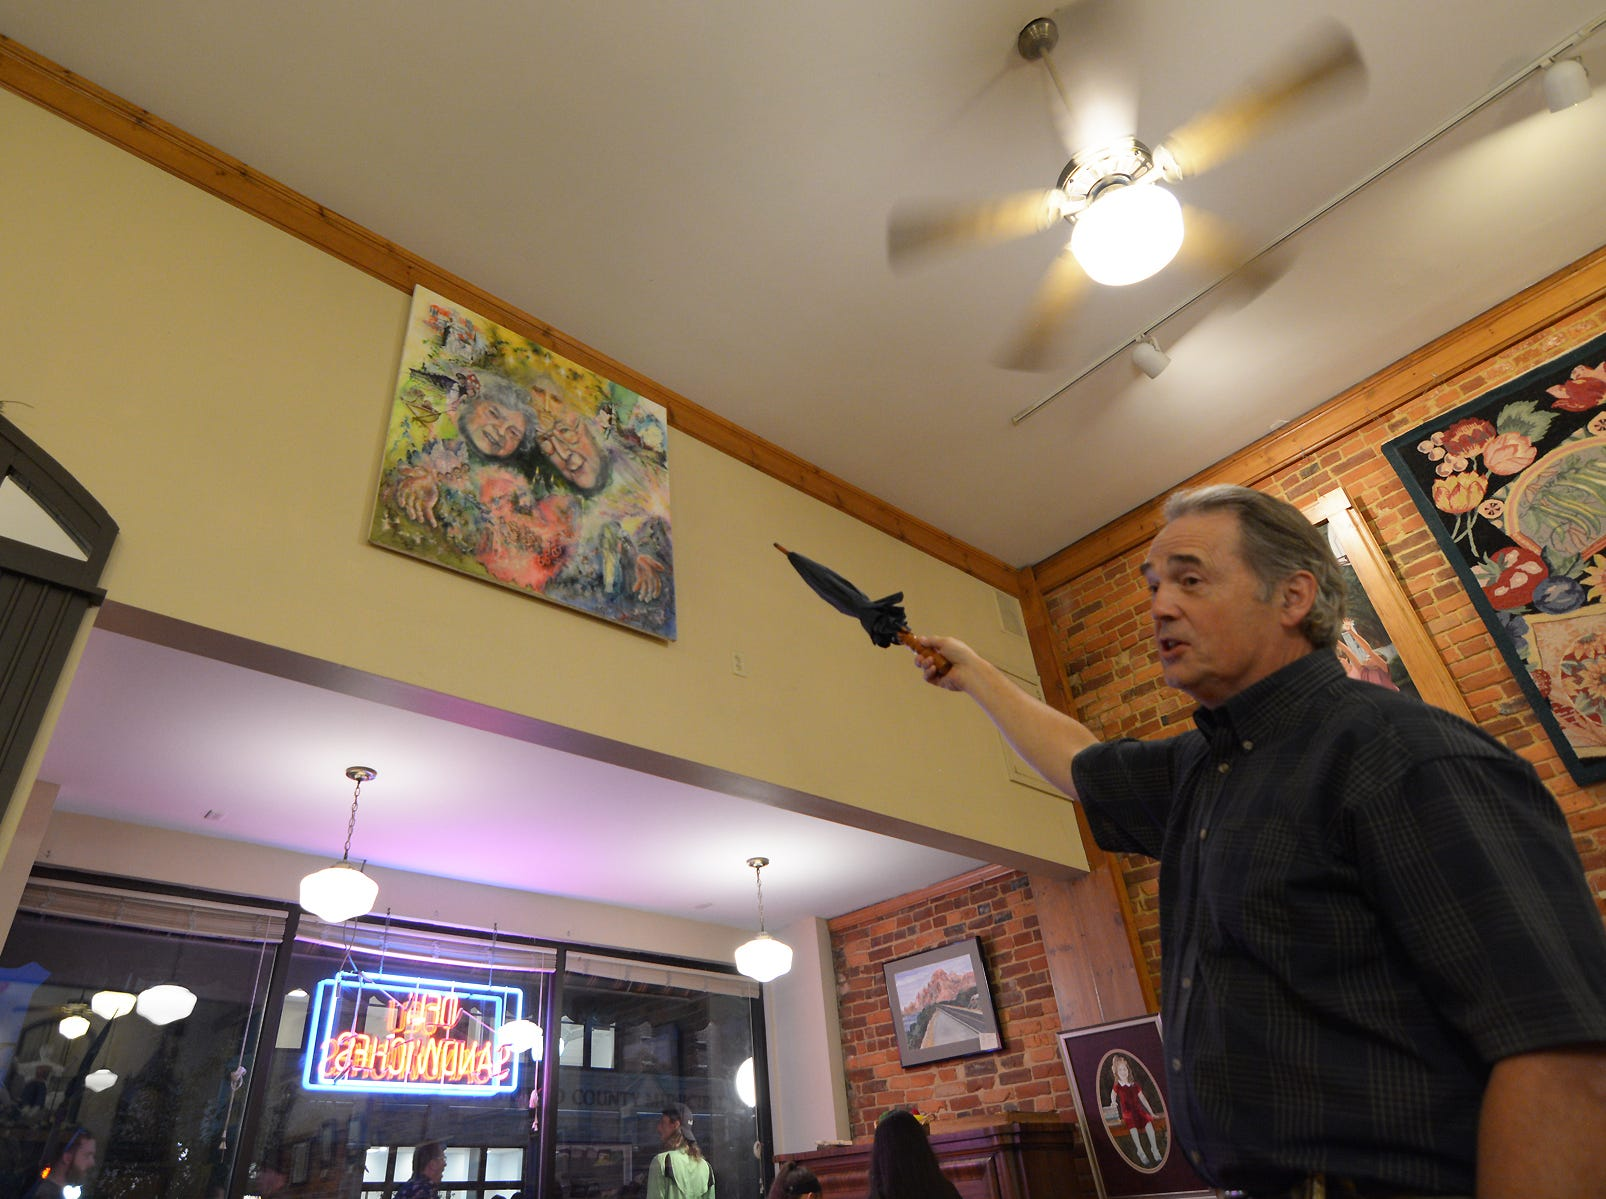 Chris Ryckman gestures with an umbrela, former co-owner of the Four Reasons Bakery and Deli, explains a painting he created inspired by the milestones of his parents marriage Friday, July 20, 2018, during the Lancaster Festival ArtWalk.